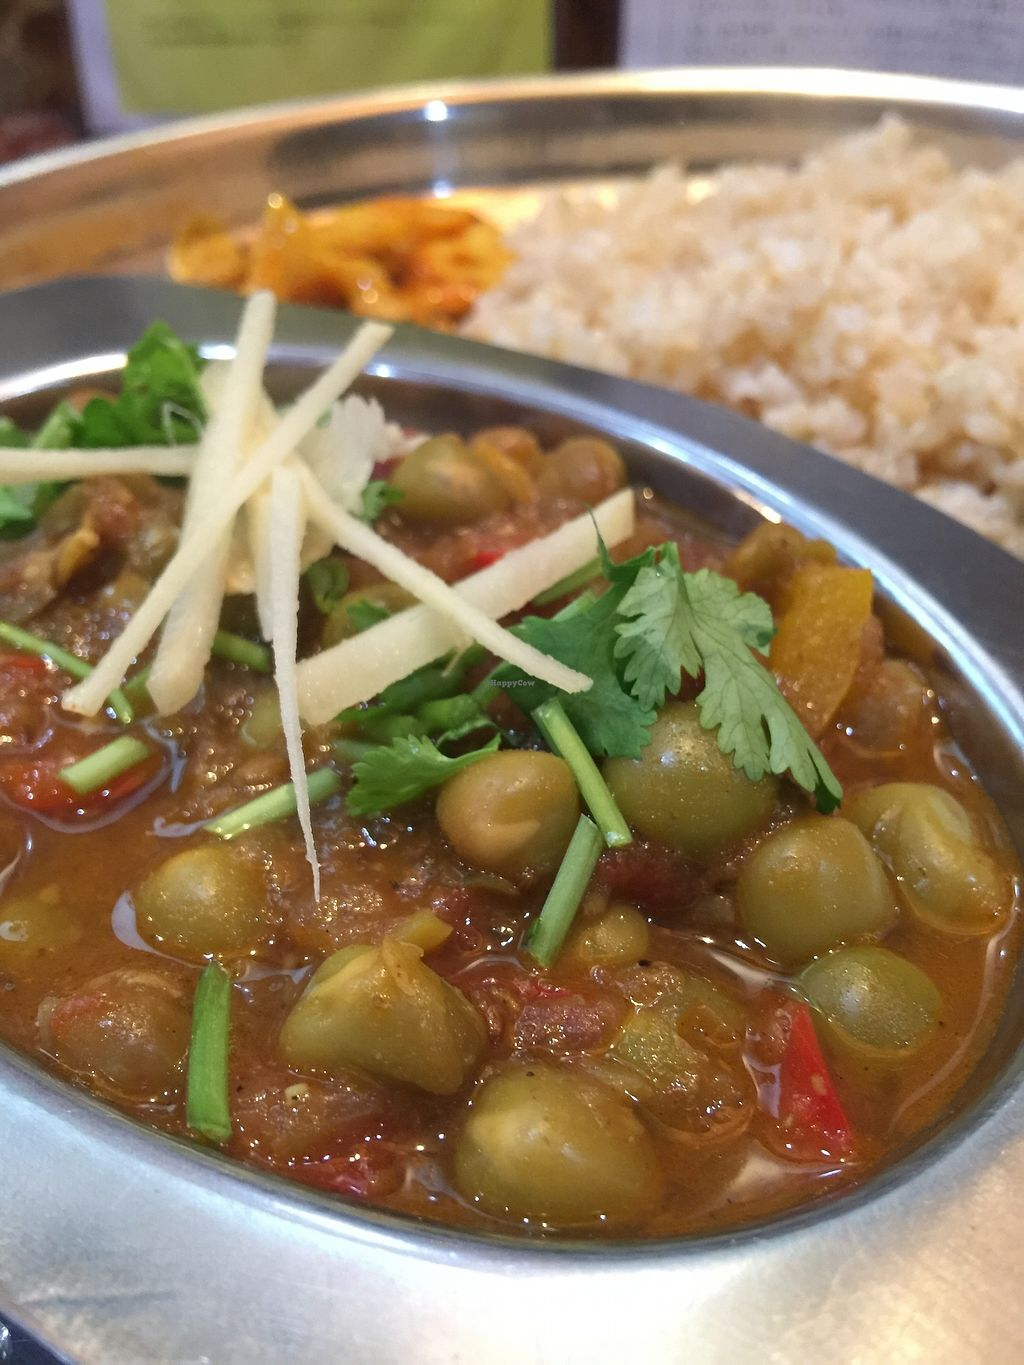 """Photo of Sacches Curry  by <a href=""""/members/profile/TheWorldDigested"""">TheWorldDigested</a> <br/>Pea curry <br/> December 14, 2017  - <a href='/contact/abuse/image/107203/335649'>Report</a>"""